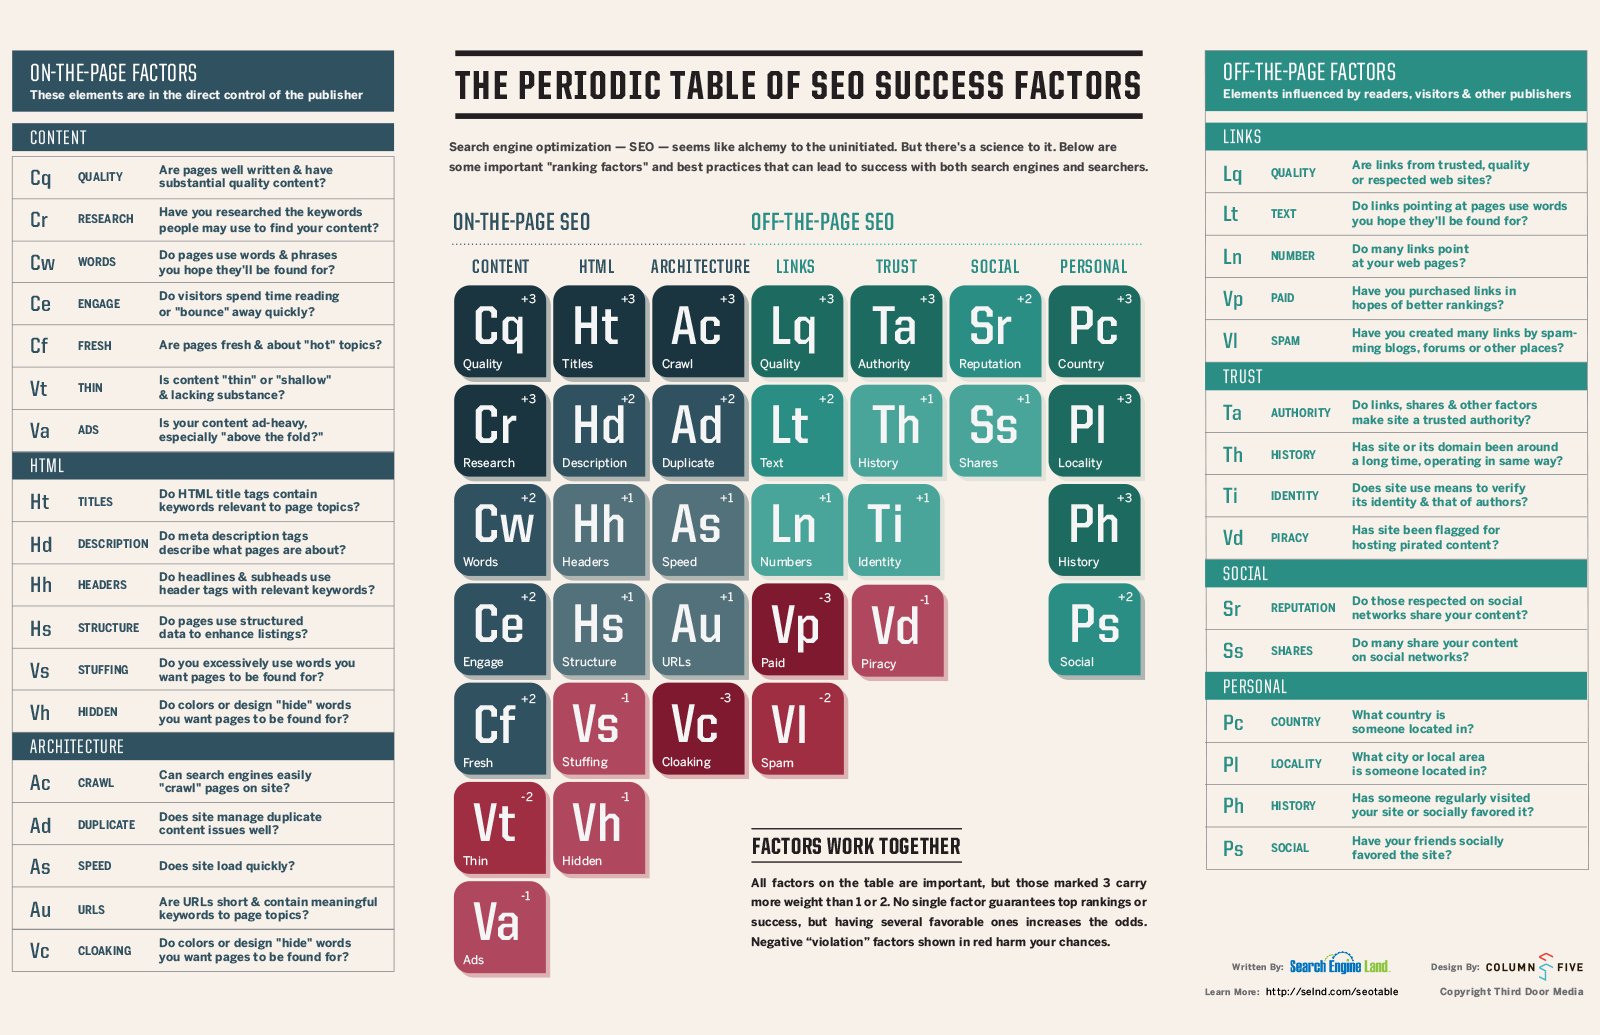 The Periodic Table of SEO Success Factors